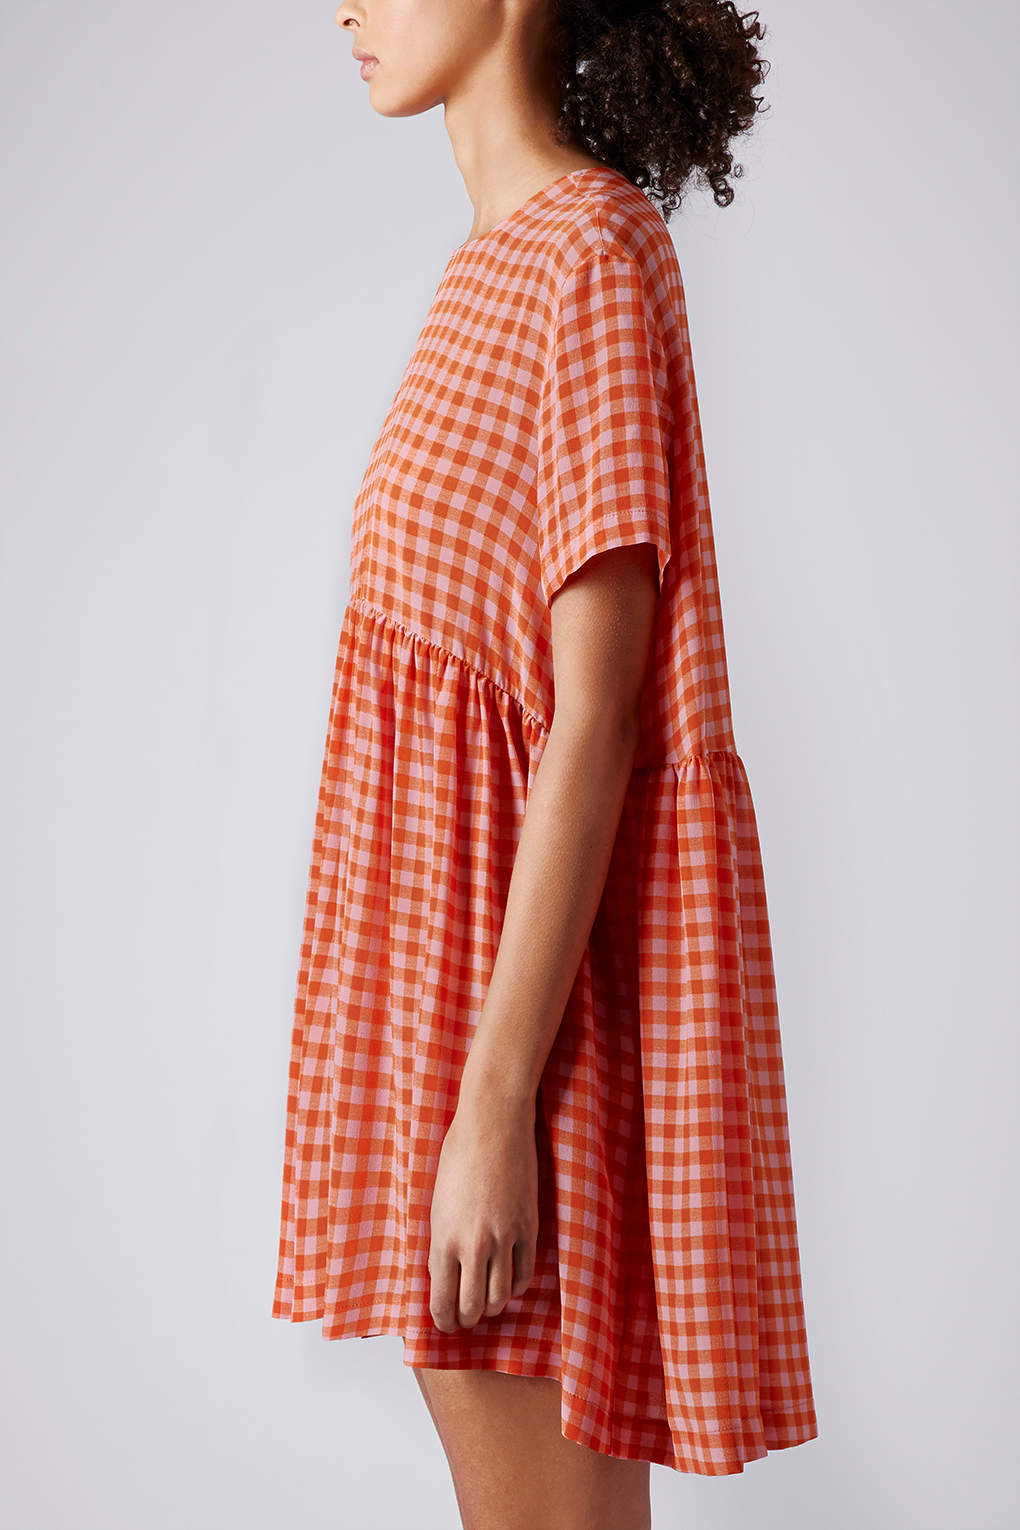 271efdbdd3e4 Lyst - TOPSHOP Gingham Babydoll Dress By Boutique in Red